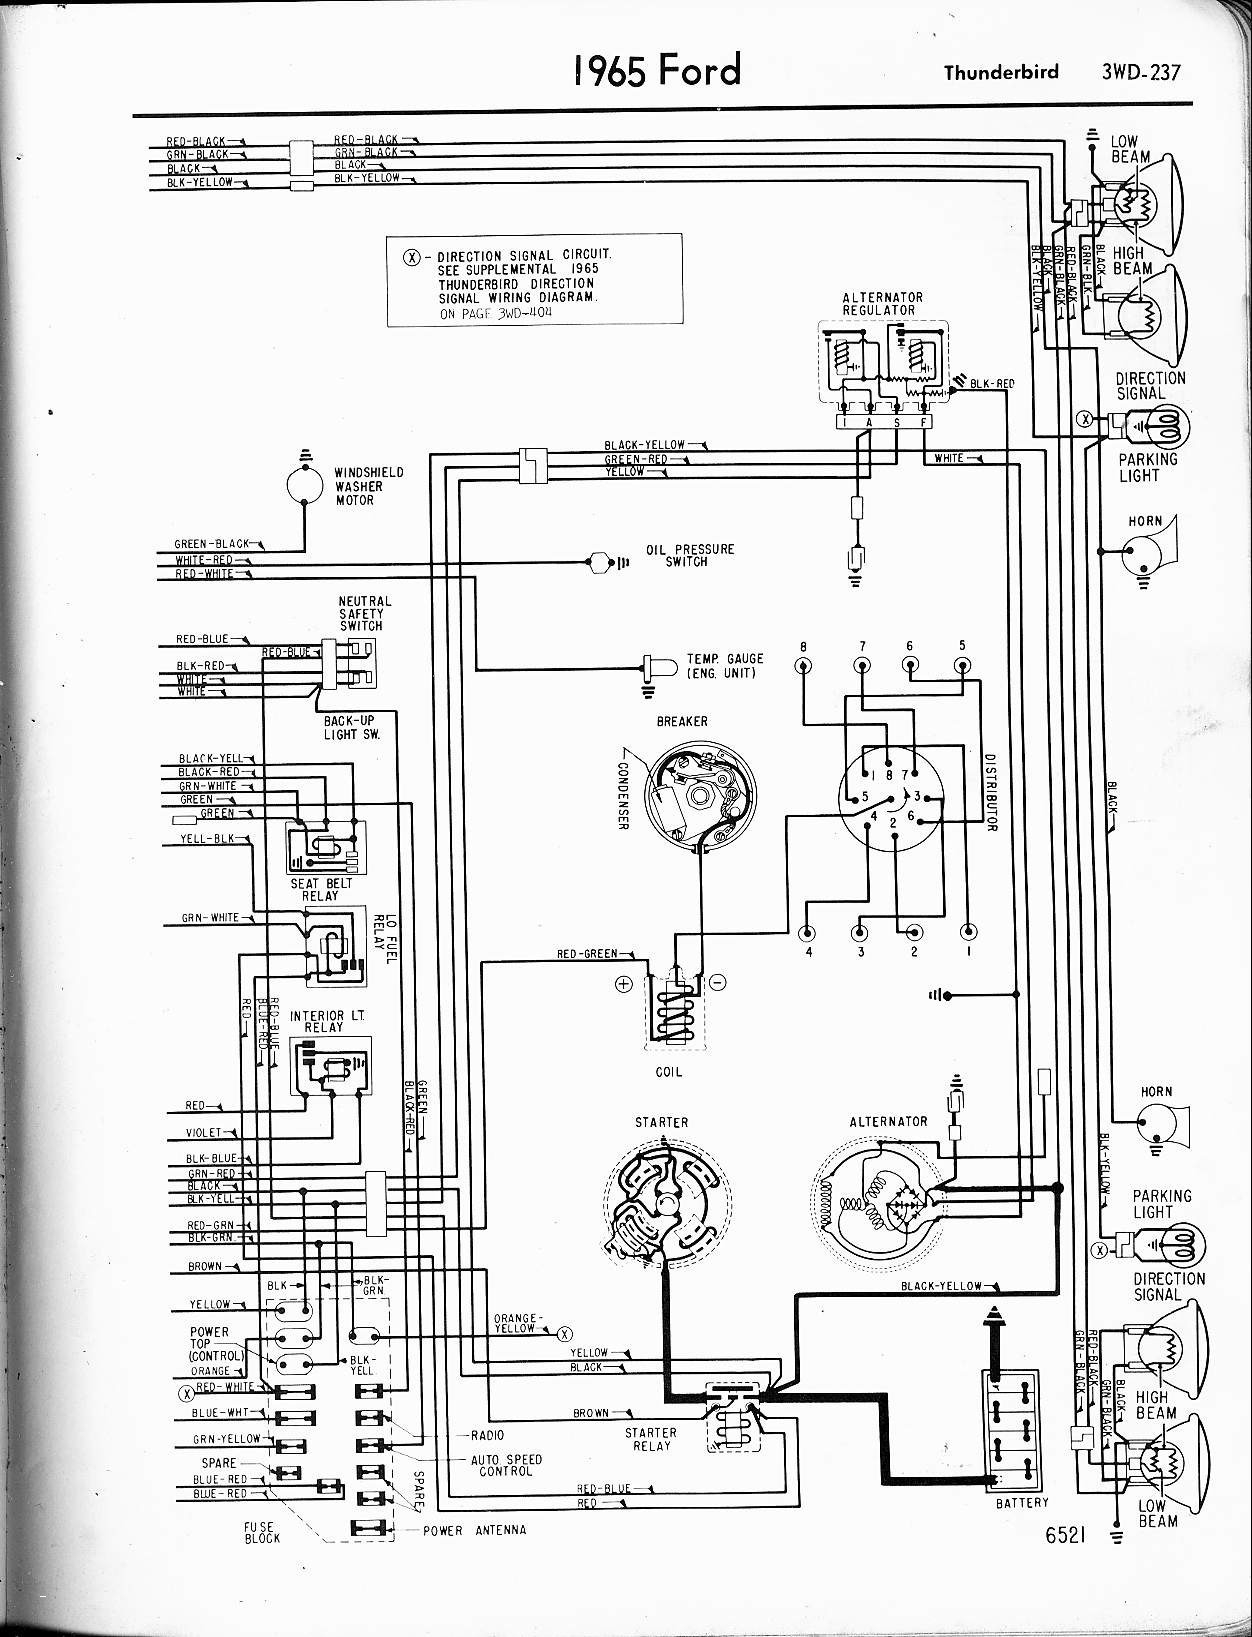 Denso Alternator Wiring Schematic